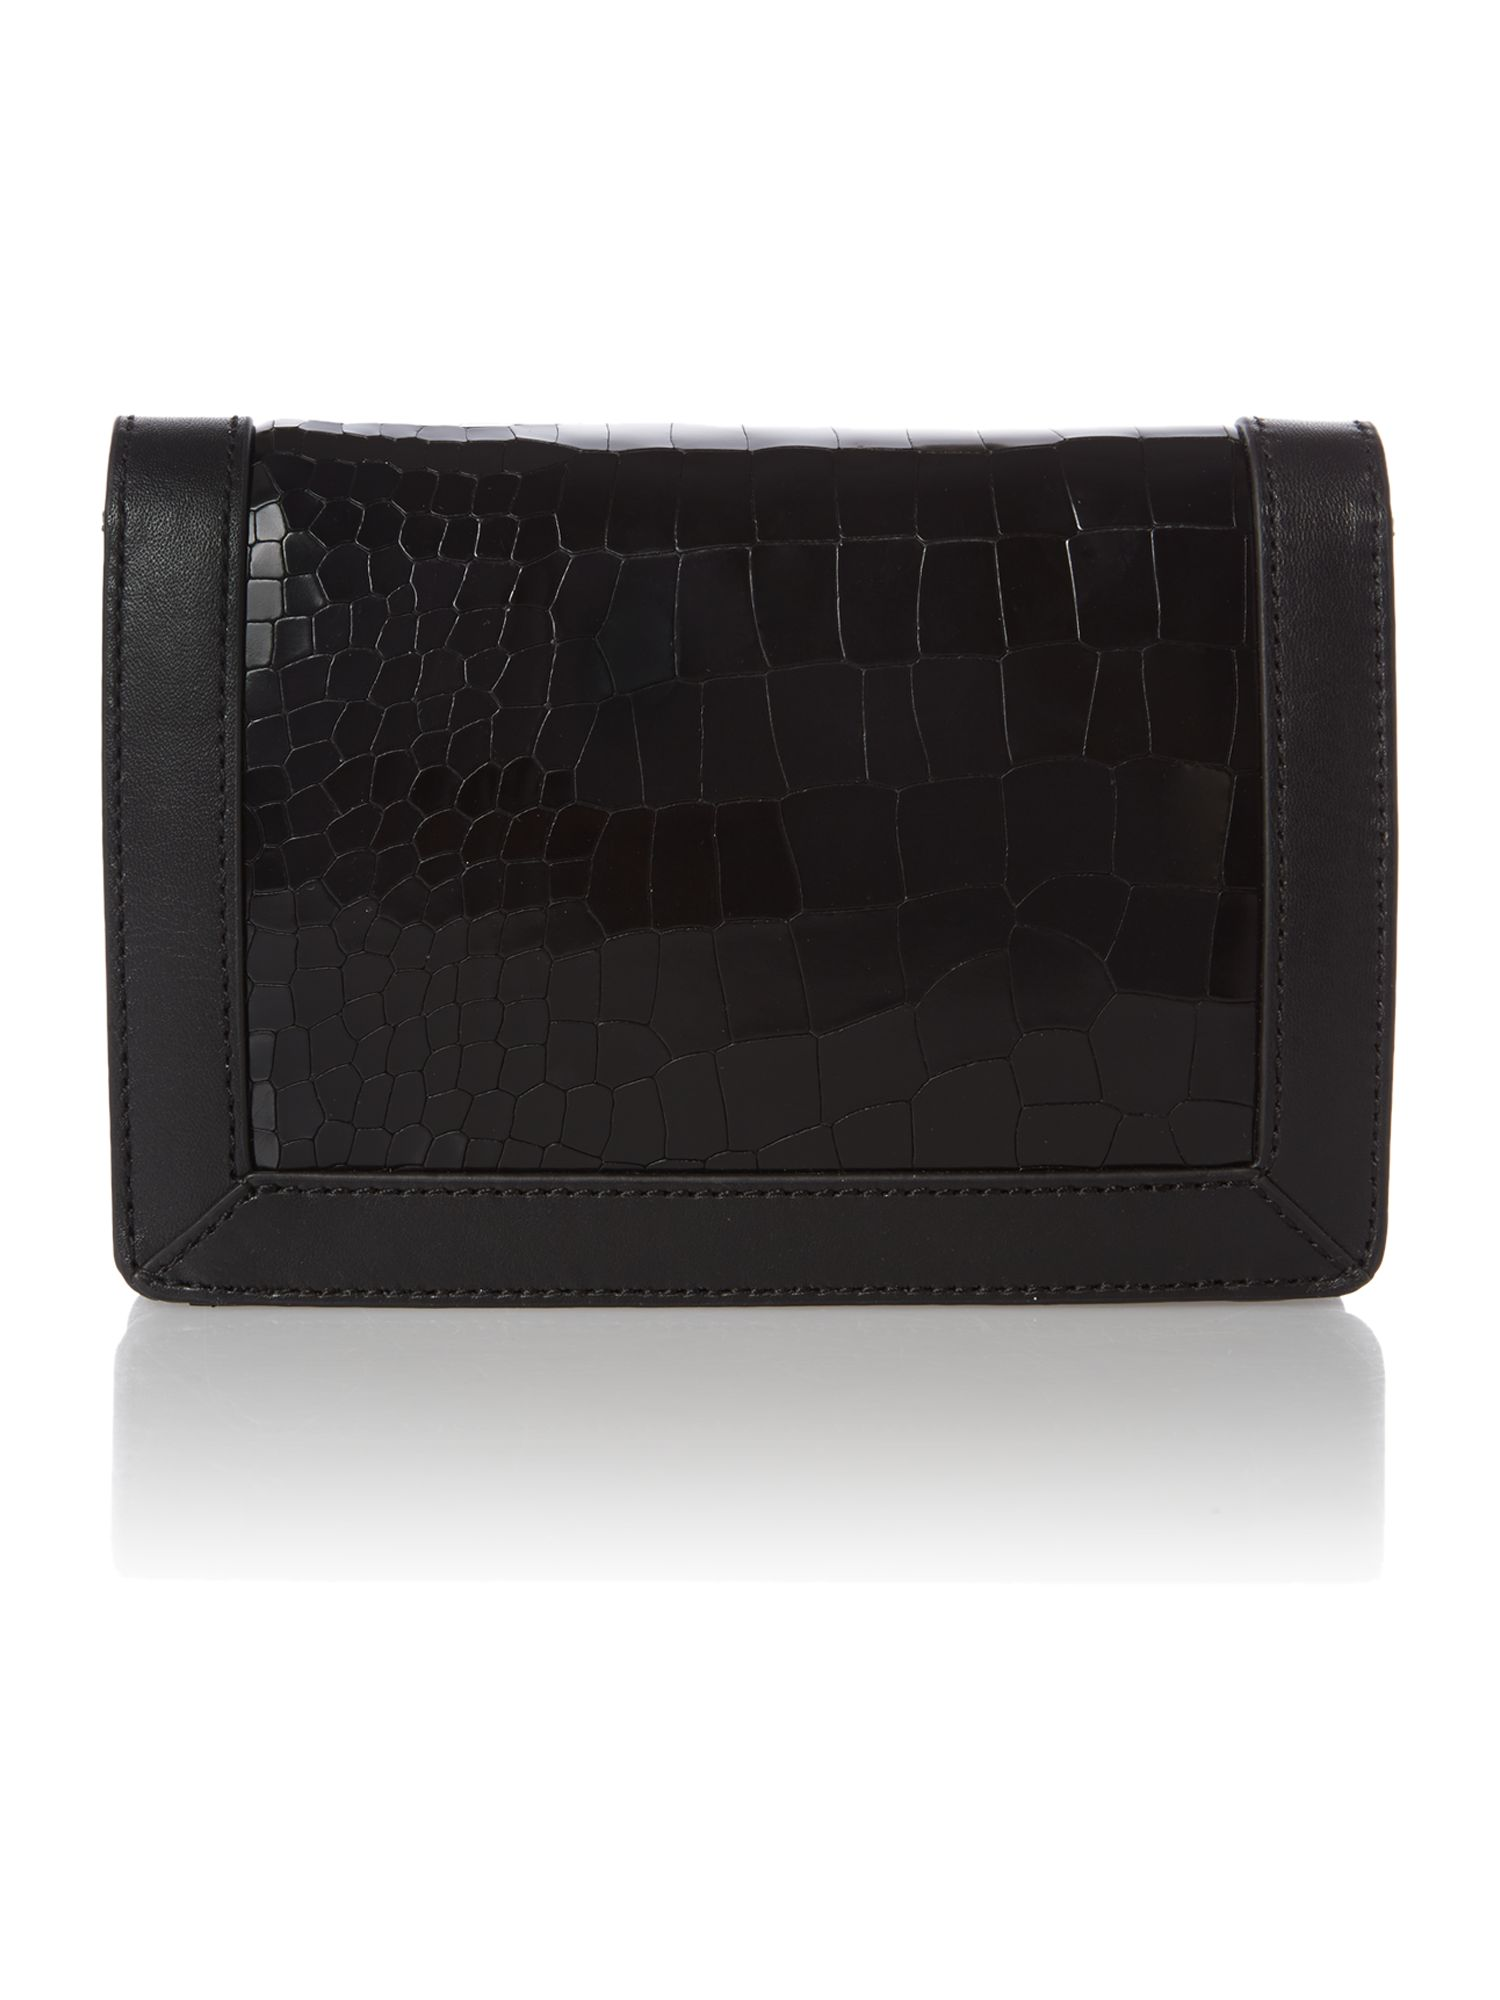 Black small cross body bag